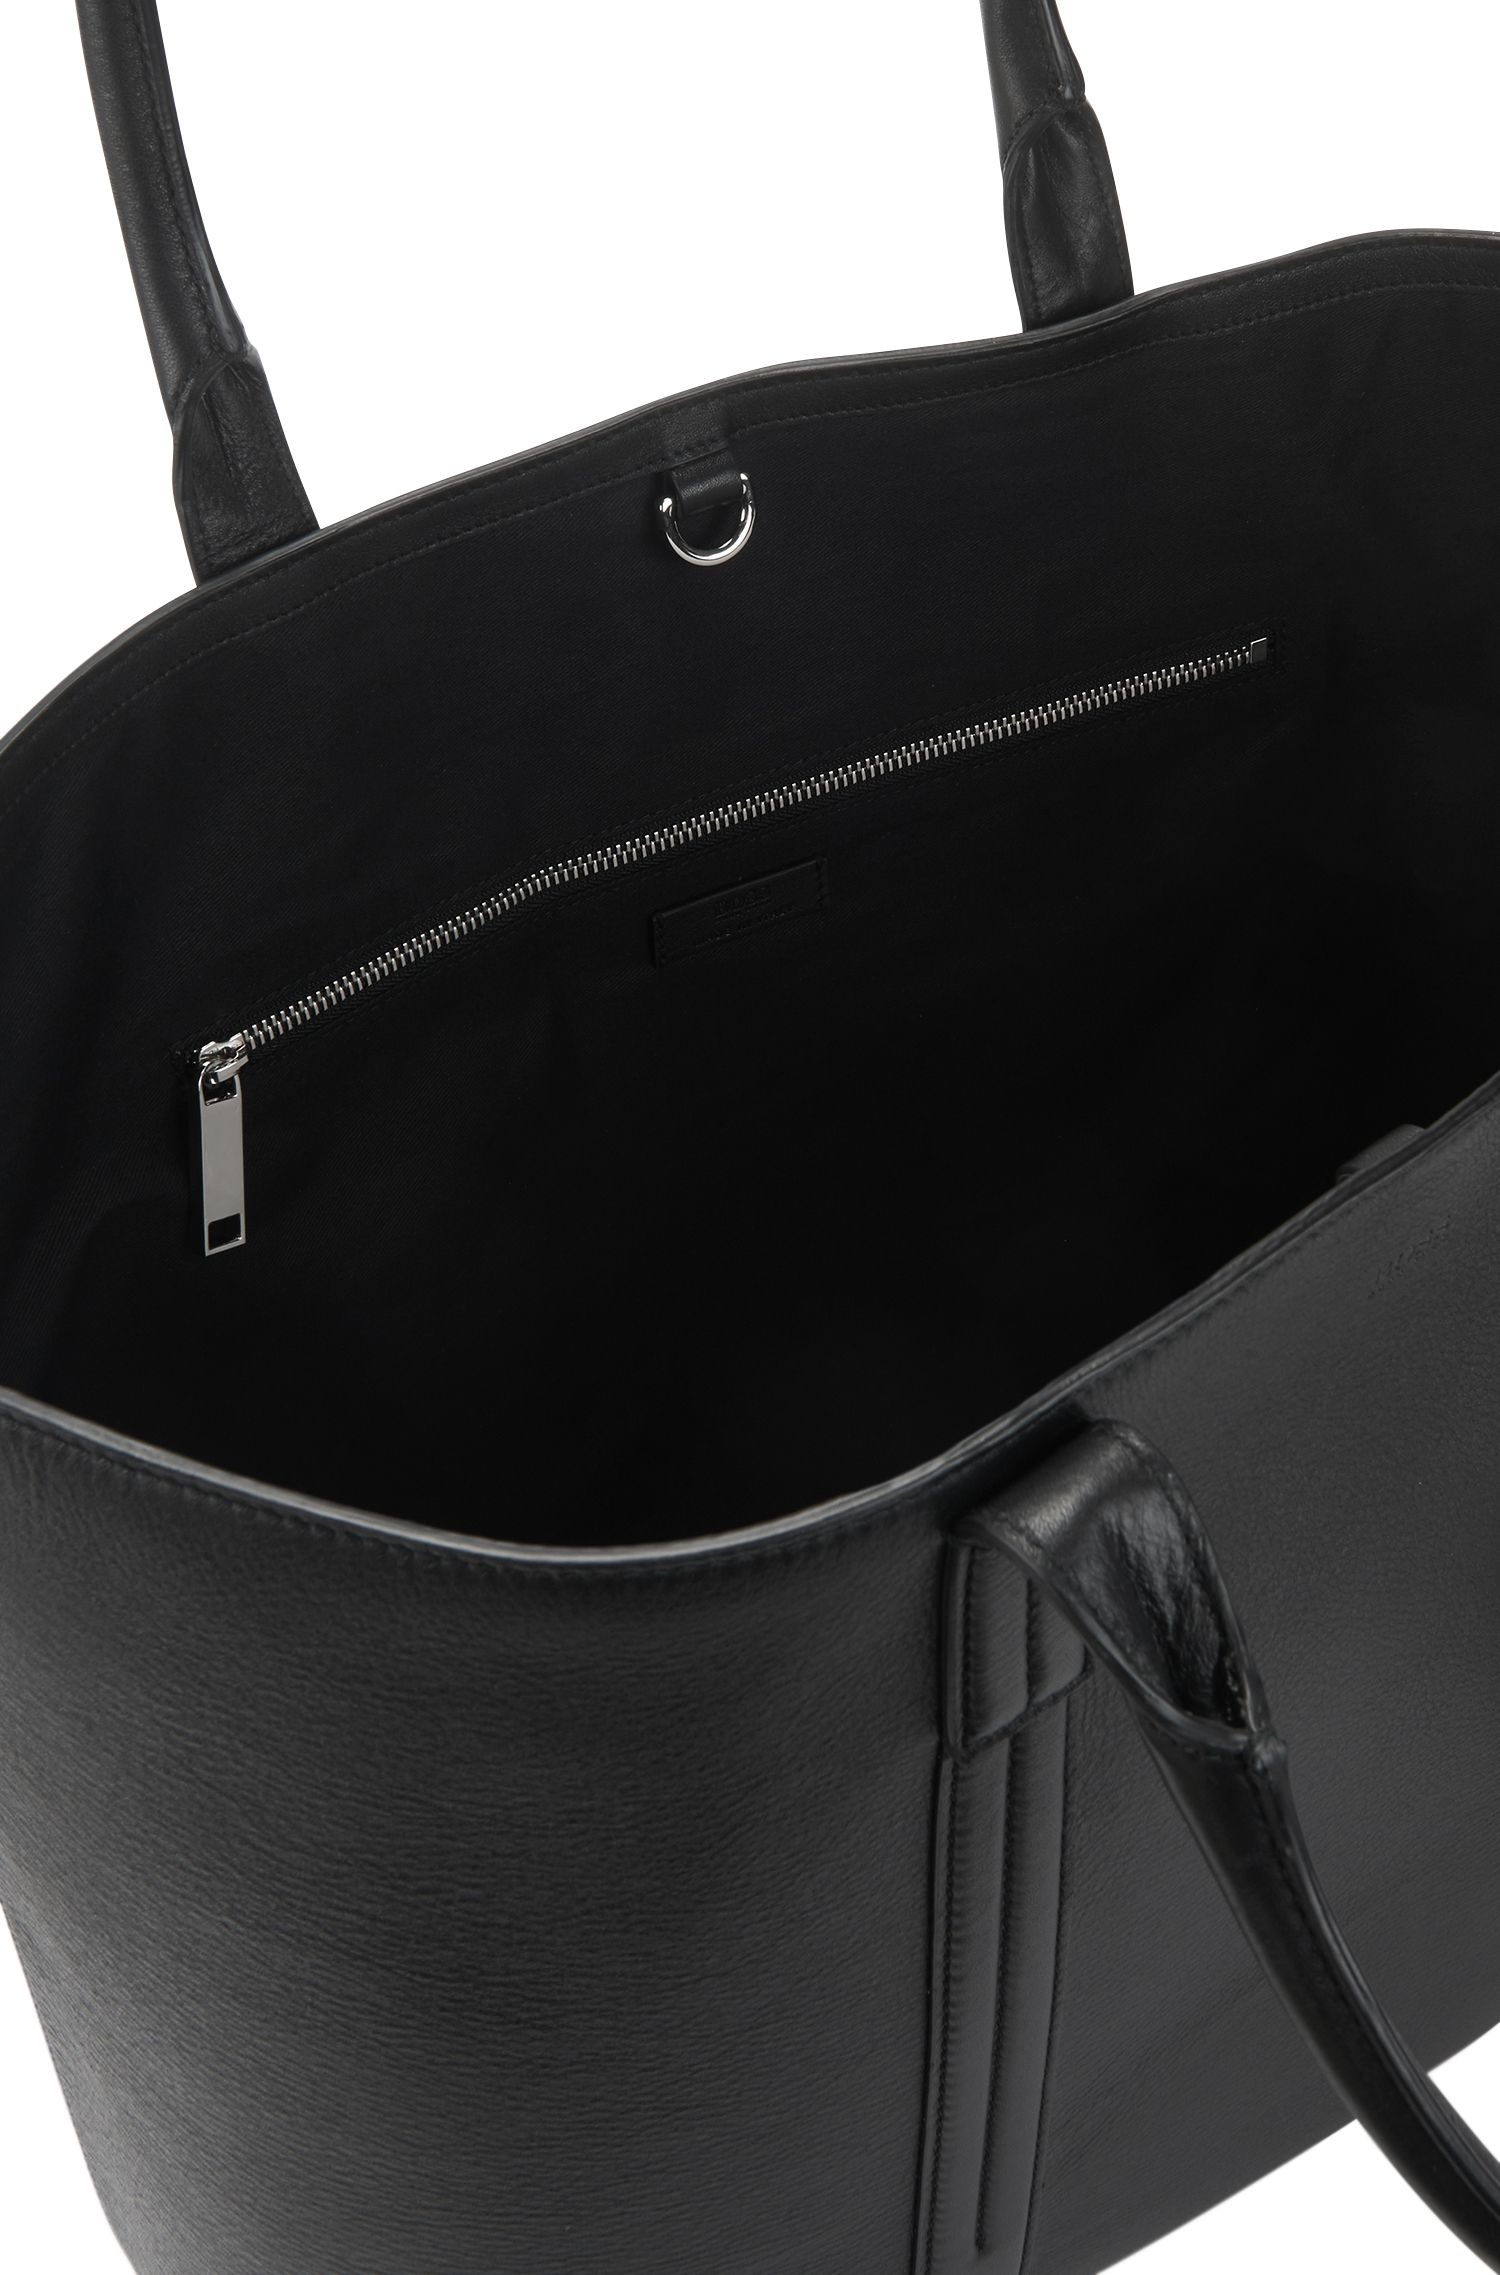 Printed-leather tote bag with polished silver hardware